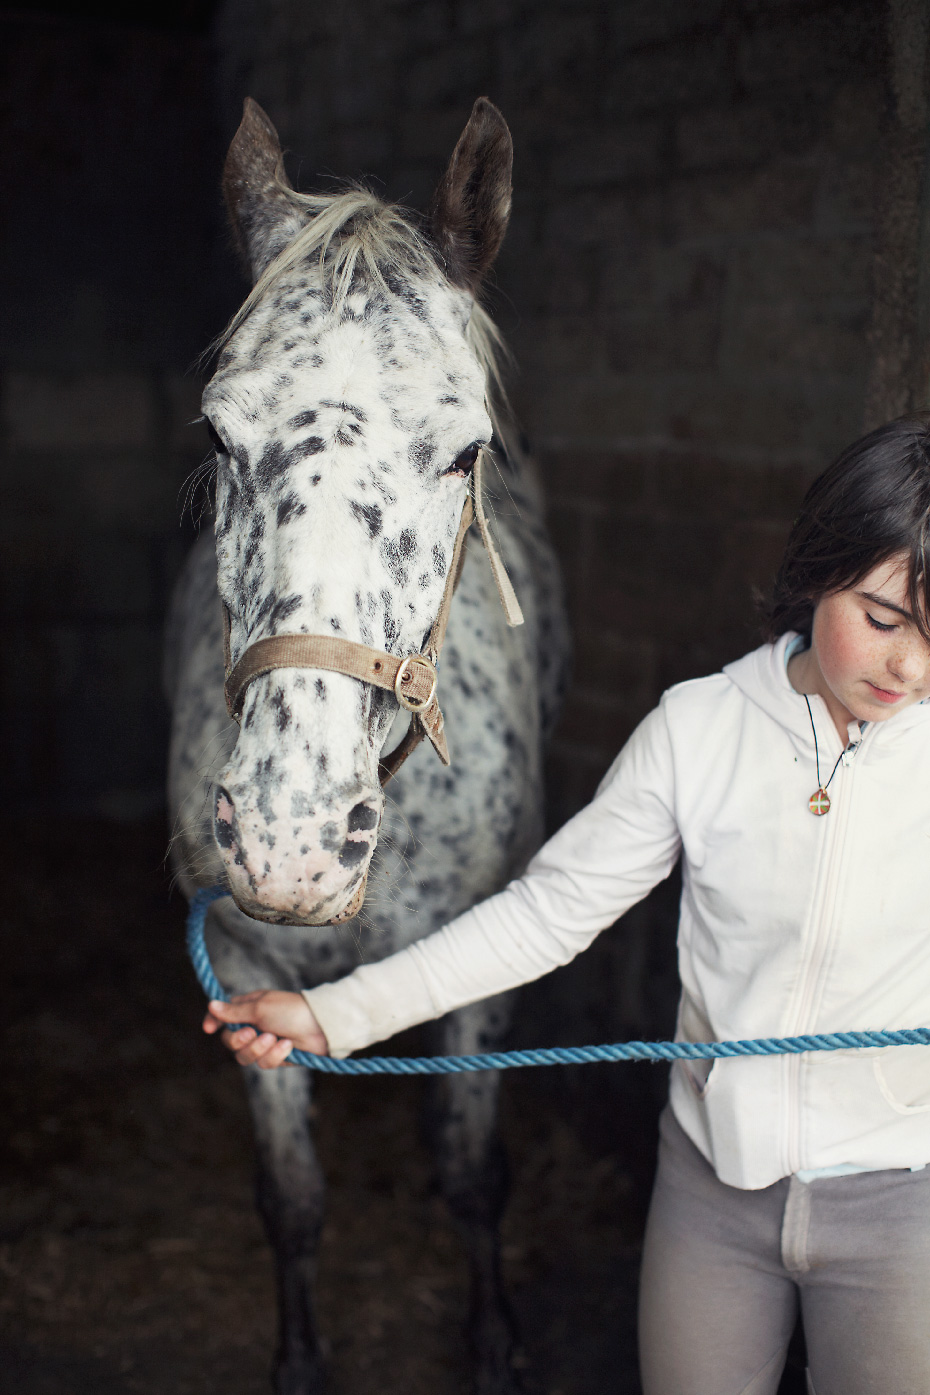 Stacey Van Berkel Photography I Girl with leopard appaloosa pony at Donegal Equestrian Centre I Donegal, Ireland